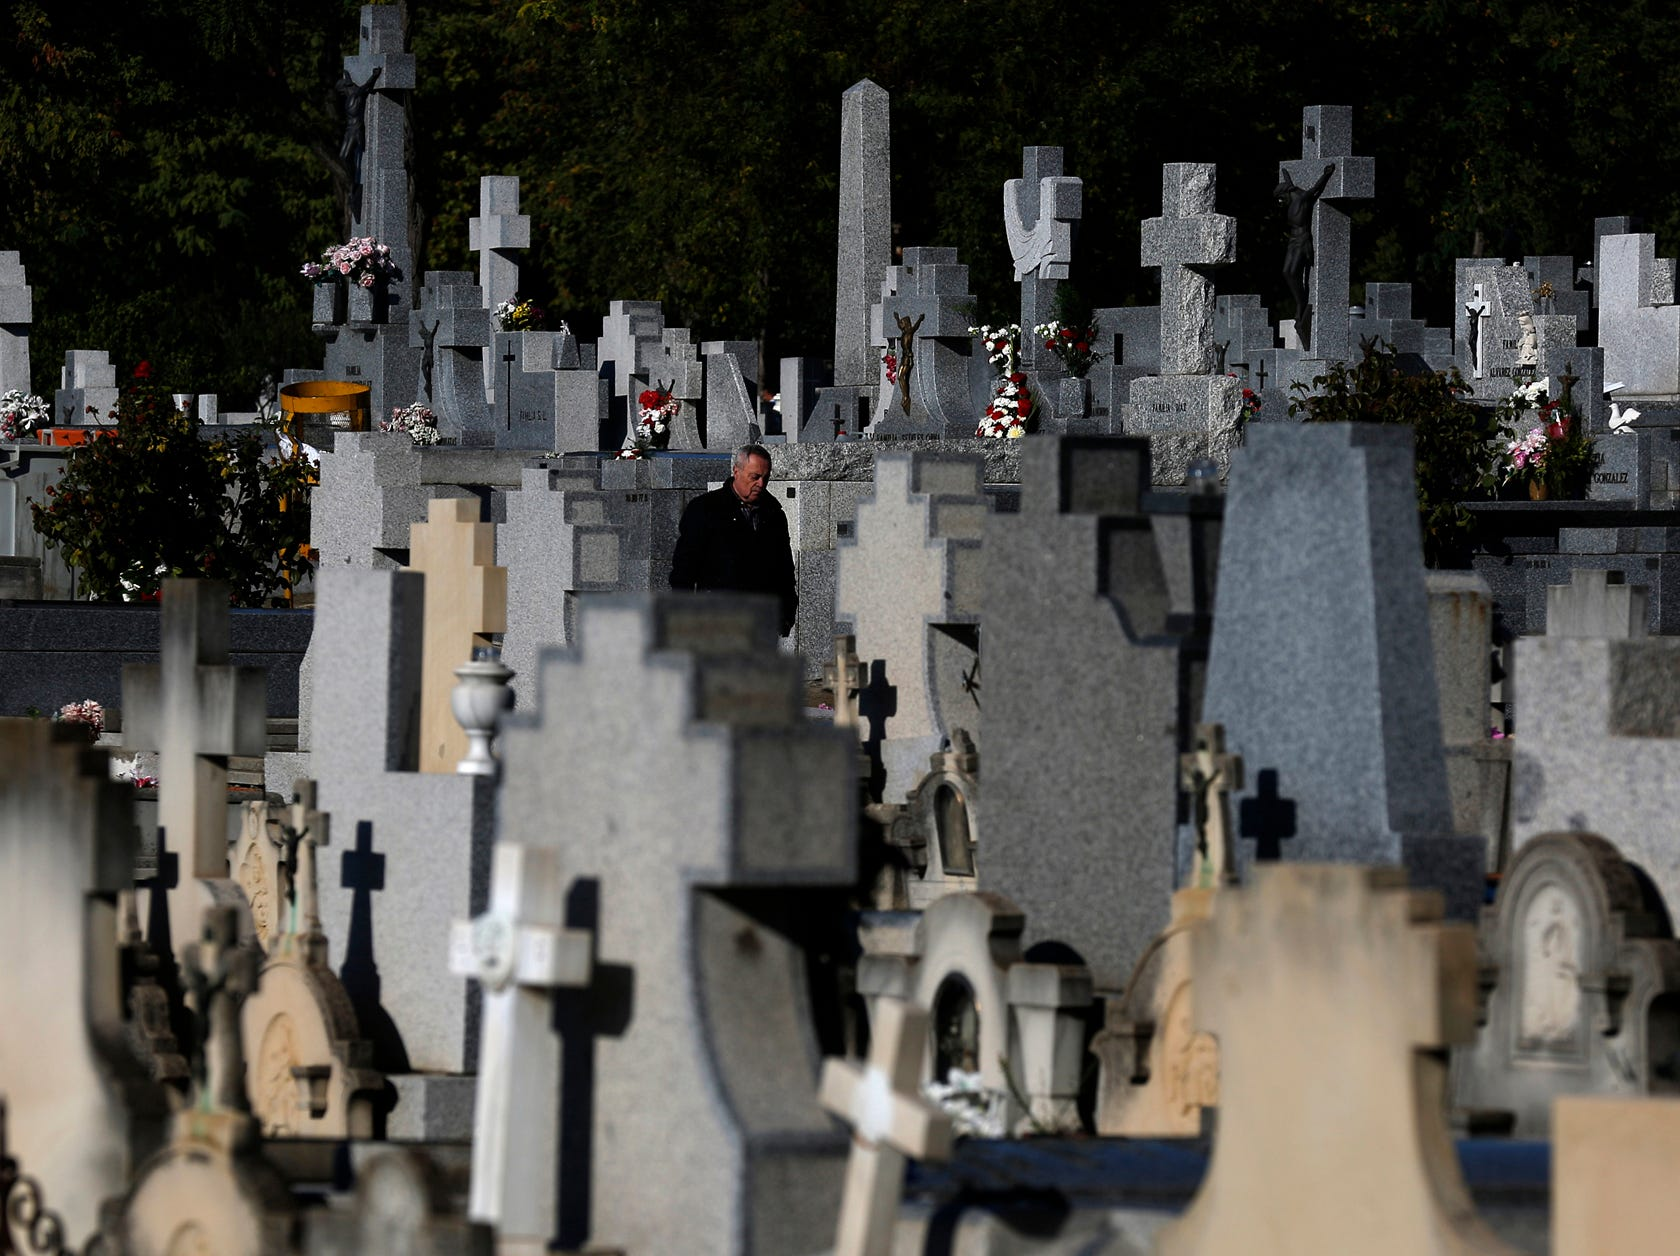 A man stands beside graves on All Saints Day, a Catholic holiday to reflect on the saints and deceased relatives, at the La Almudena cemetery in Madrid, Spain, Thursday, Nov. 1, 2018. (AP Photo/Manu Fernandez)